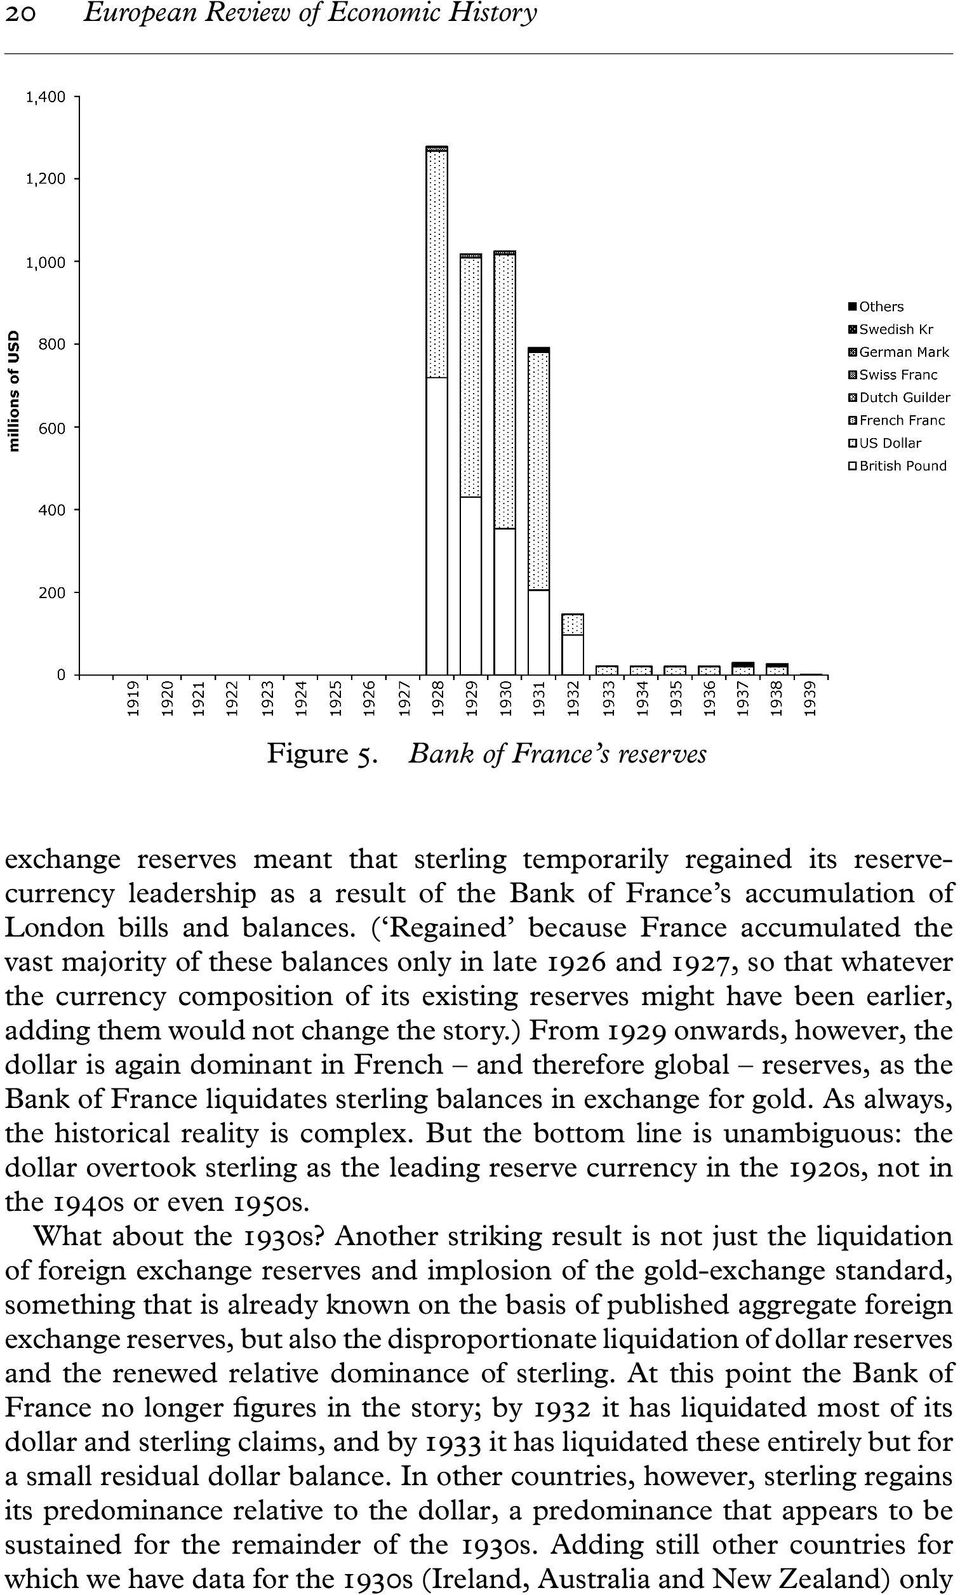 ( Regained because France accumulated the vast majority of these balances only in late 1926 and 1927, sothatwhatever the currency composition of its existing reserves might have been earlier, adding